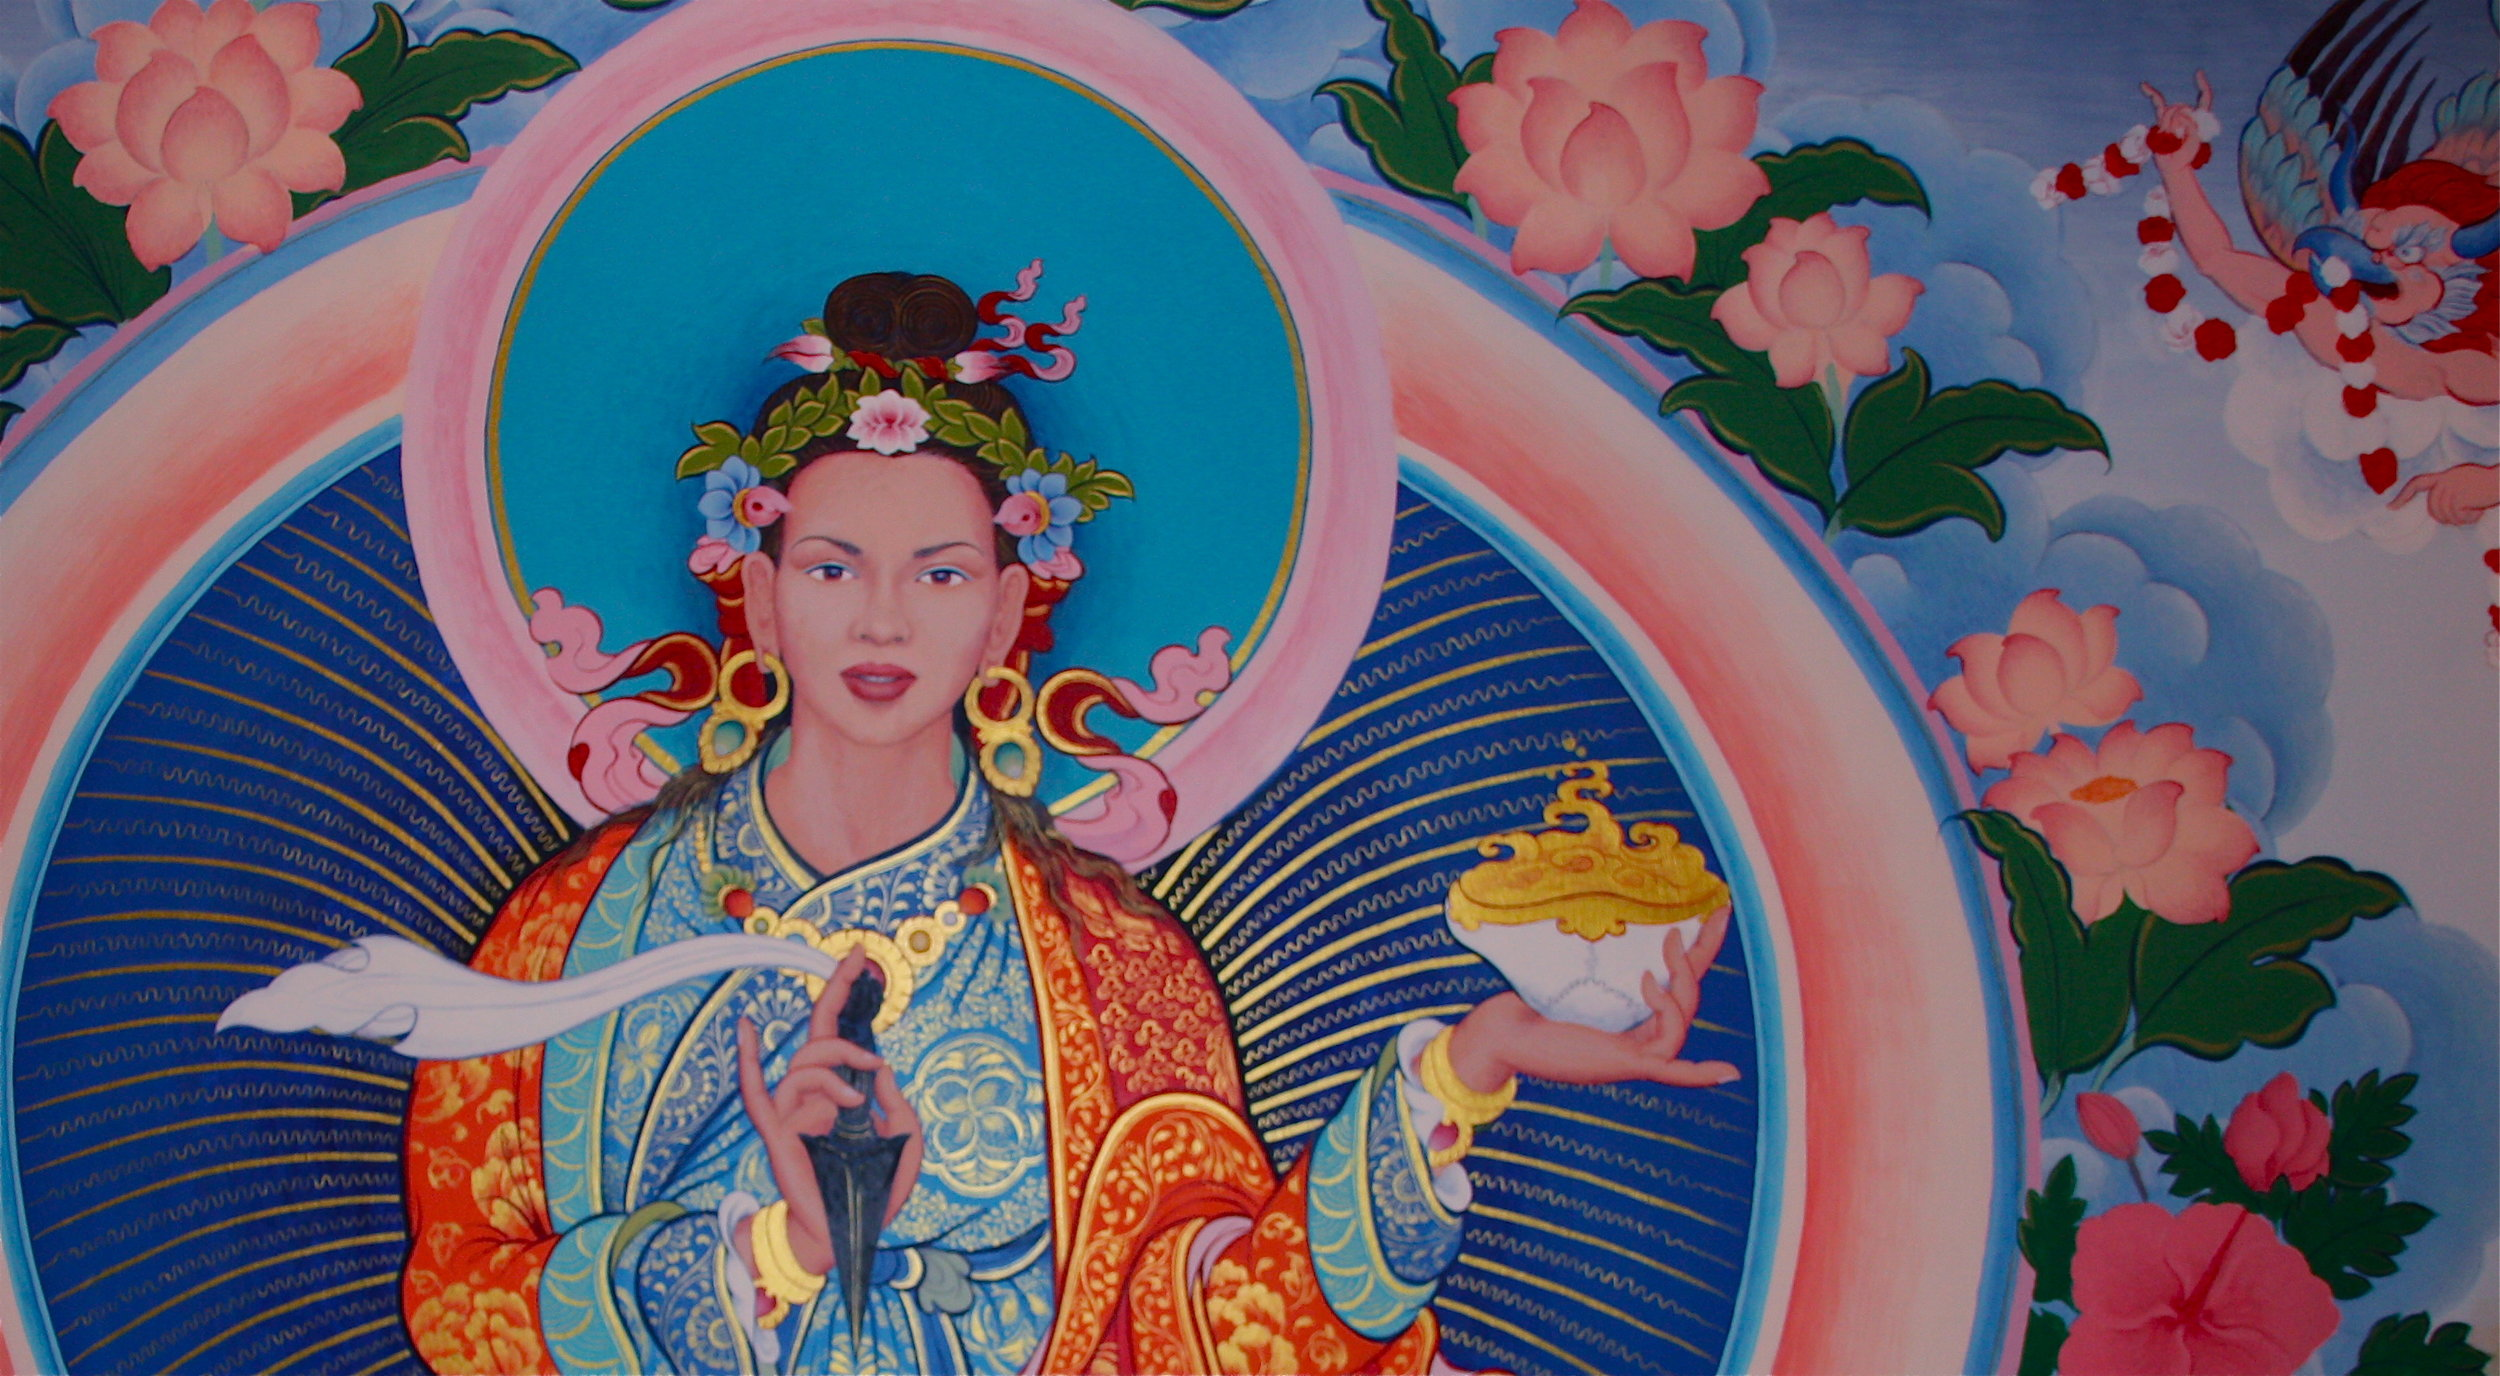 Yeshe Tsogyel, 8th century Buddhist Siddha and master of Tantra and Dzogchen.